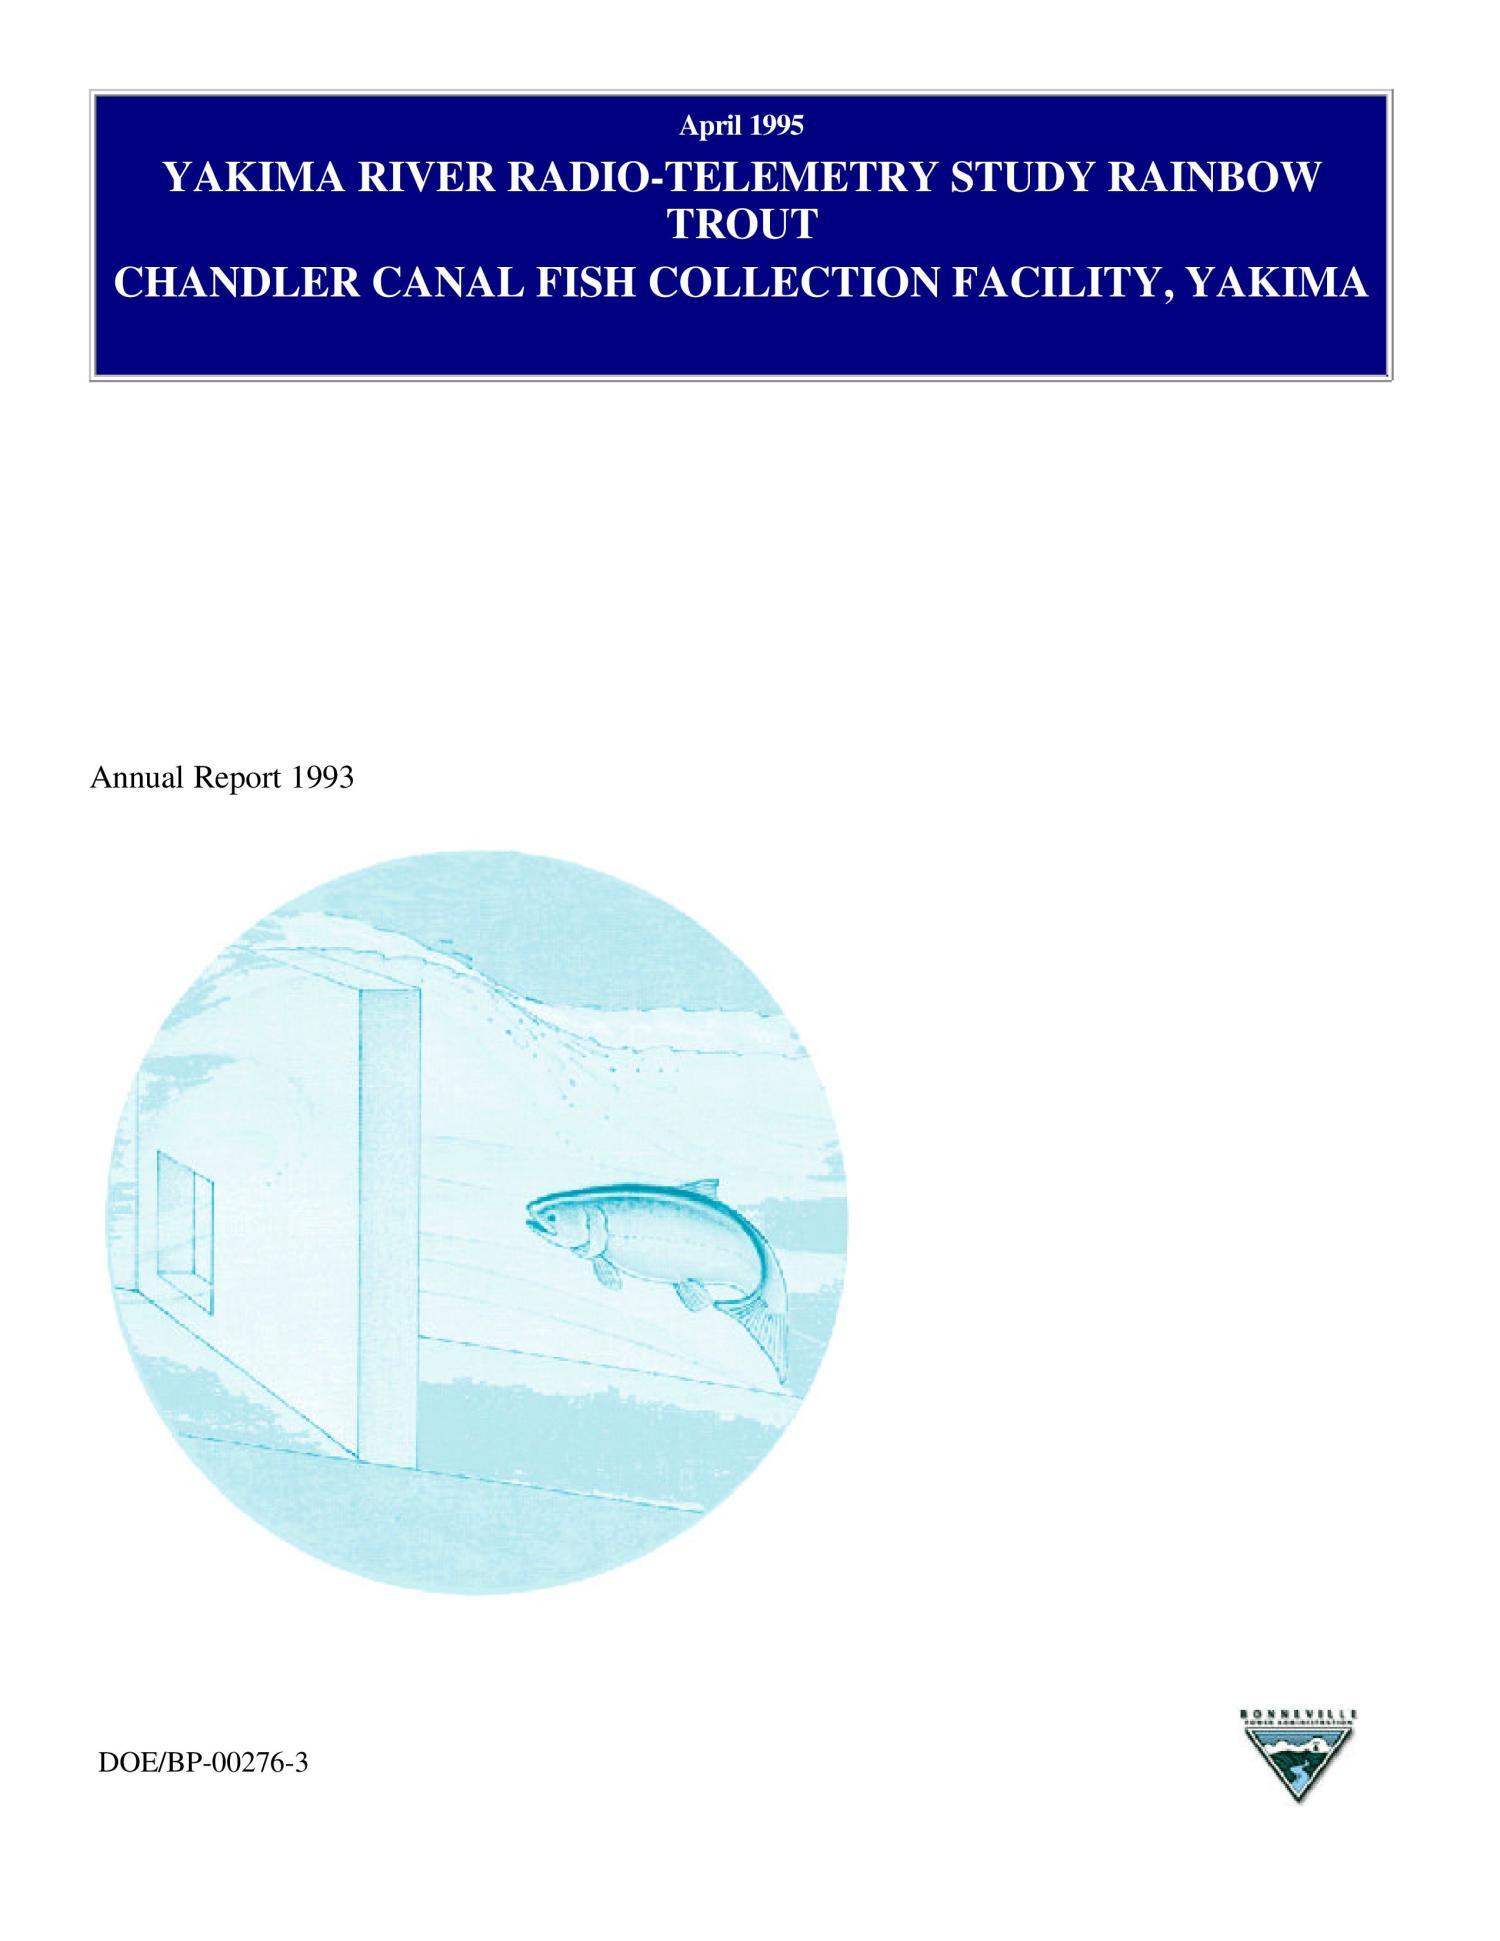 Yakima River Radio-Telemetry Study, Rainbow Trout, 1993 Annual Report.                                                                                                      [Sequence #]: 1 of 34